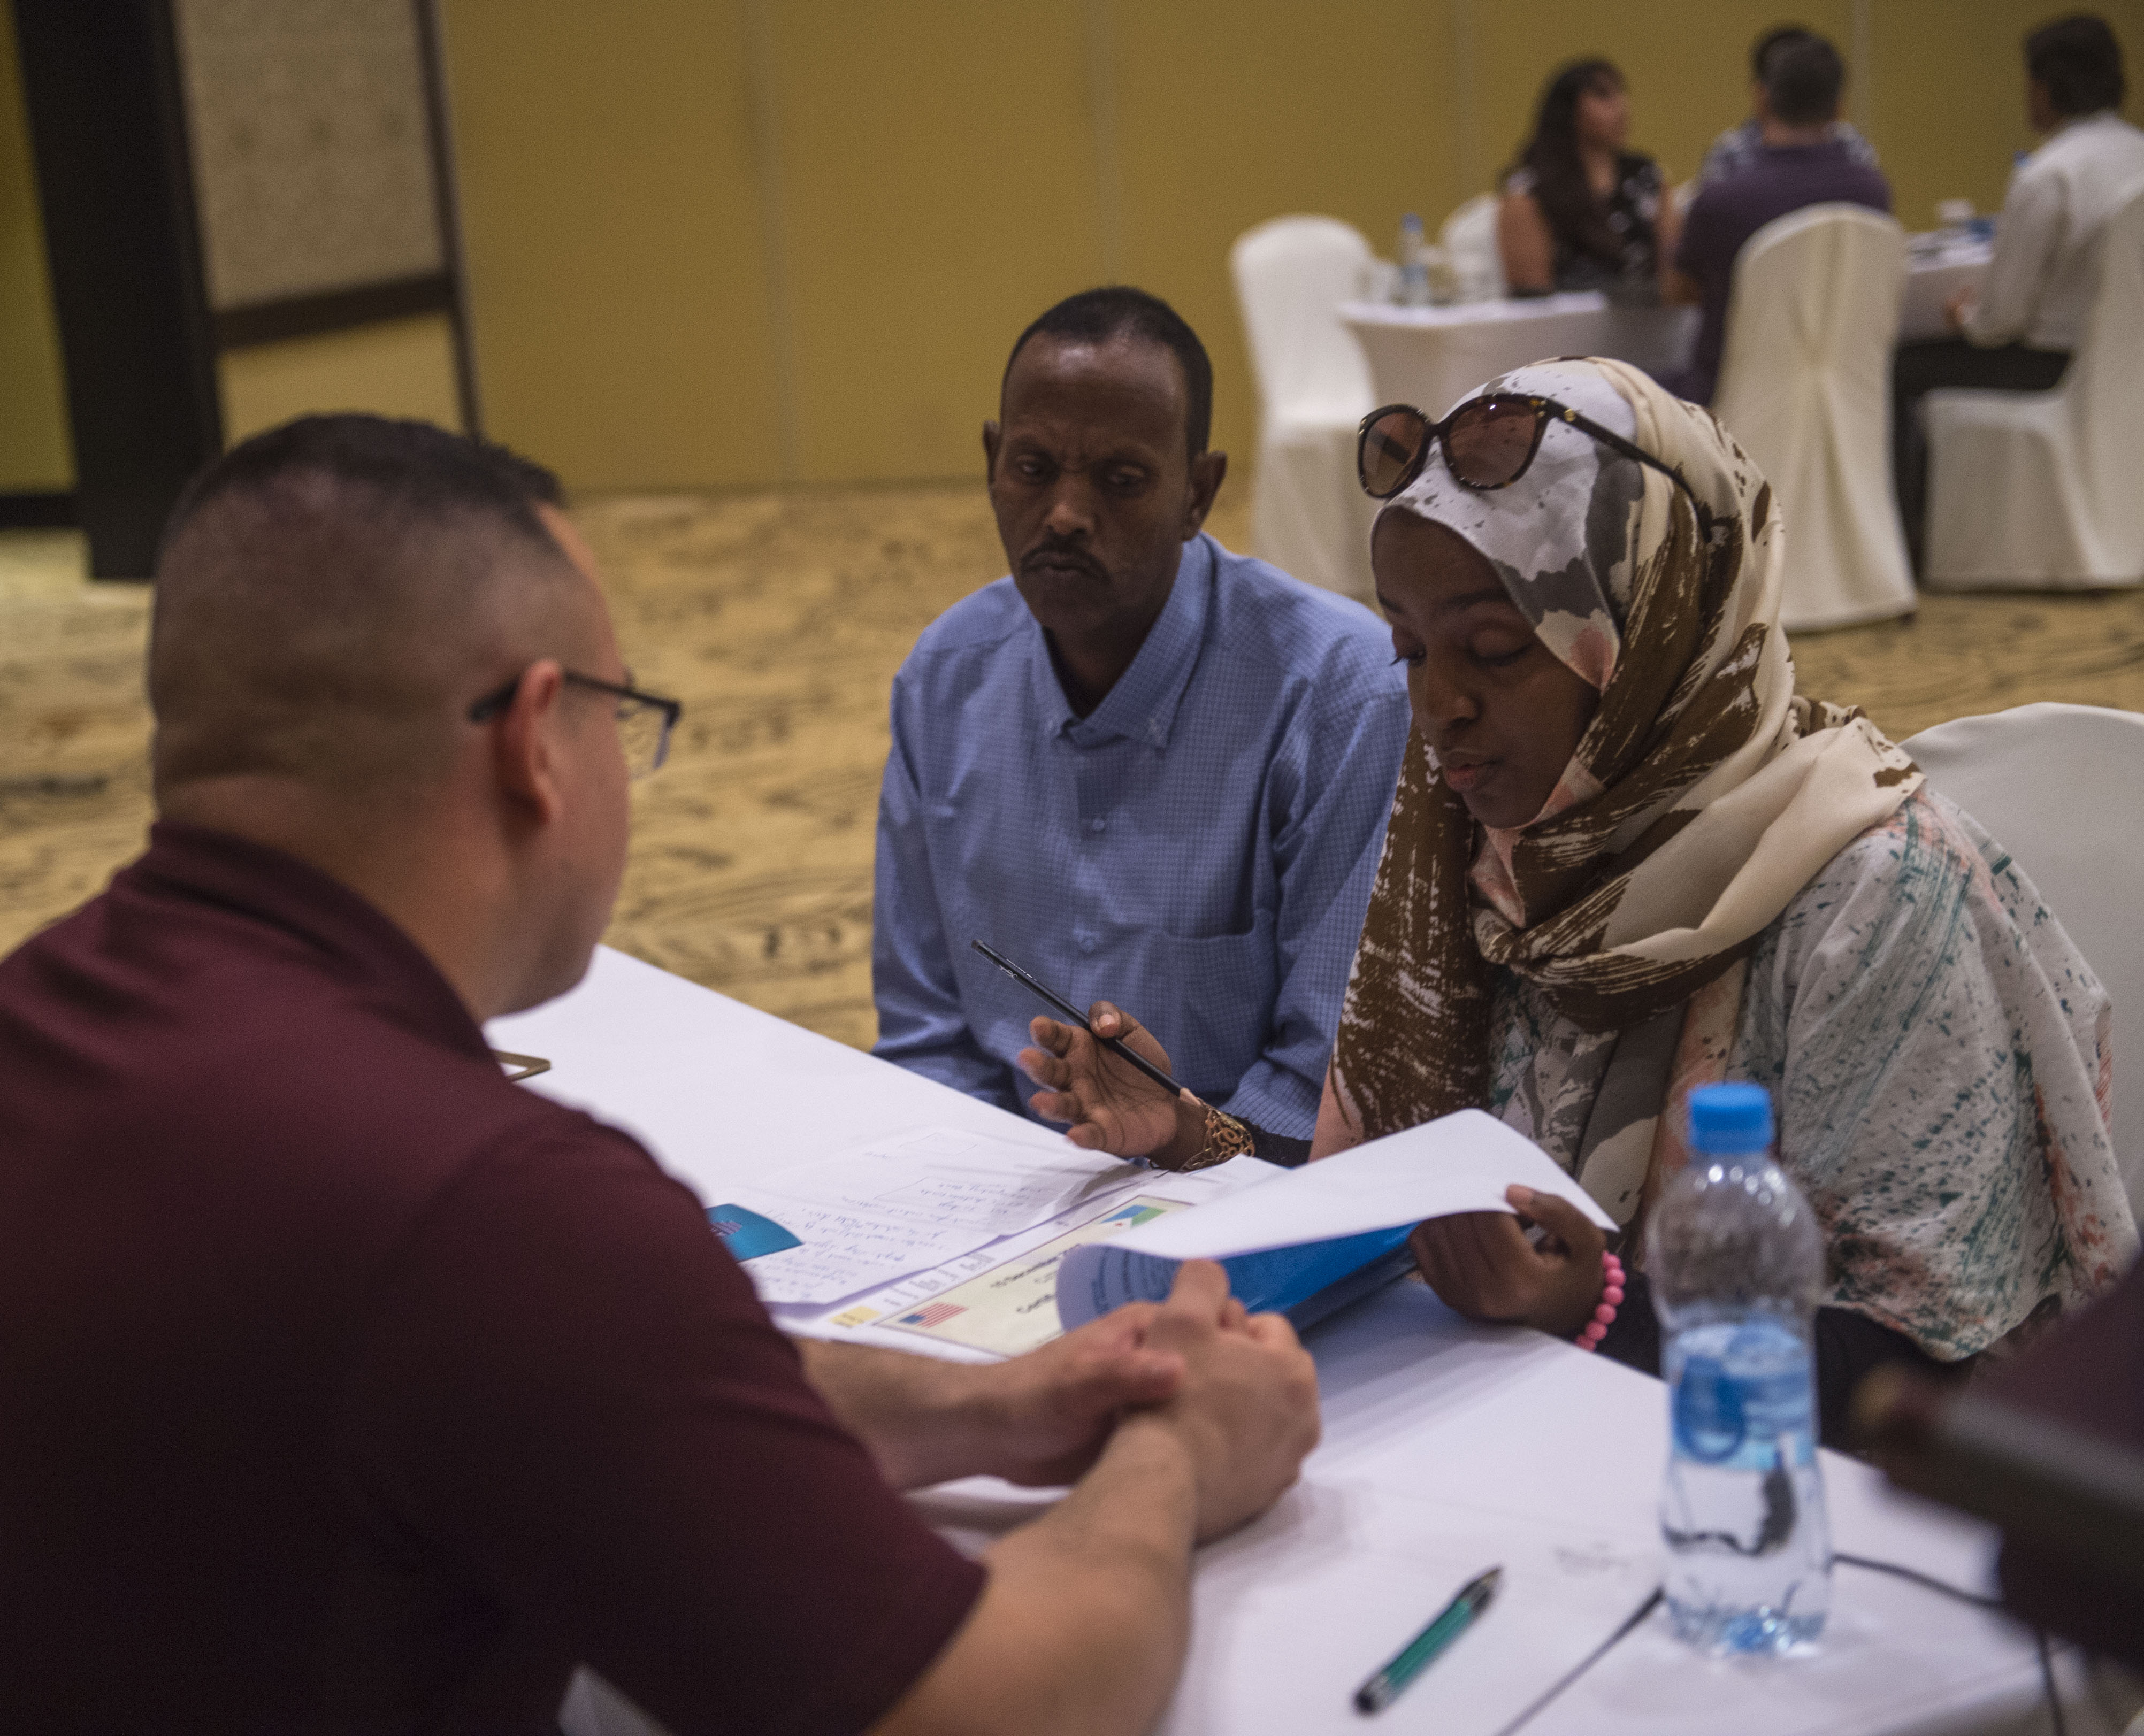 U.S. Army Staff Sgt. Uriel Ramirez, Combined Joint Task Force - Horn of Africa (CJTF-HOA) Contingency Contracting Office (CCO) contracting officer, talks with representatives from a local business during a Djibouti Economic Outreach Symposium in Ilon Du Heron, Djibouti, Dec. 19, 2017. Hosted by the CJTF-HOA CCO and commonly referred to as Vendor Day, the symposium is designed to get local business owners together and make them aware of the opportunities and process of doing business as a vendor with the U.S. government. (U.S. Air Force photo by Staff Sgt. Timothy Moore)